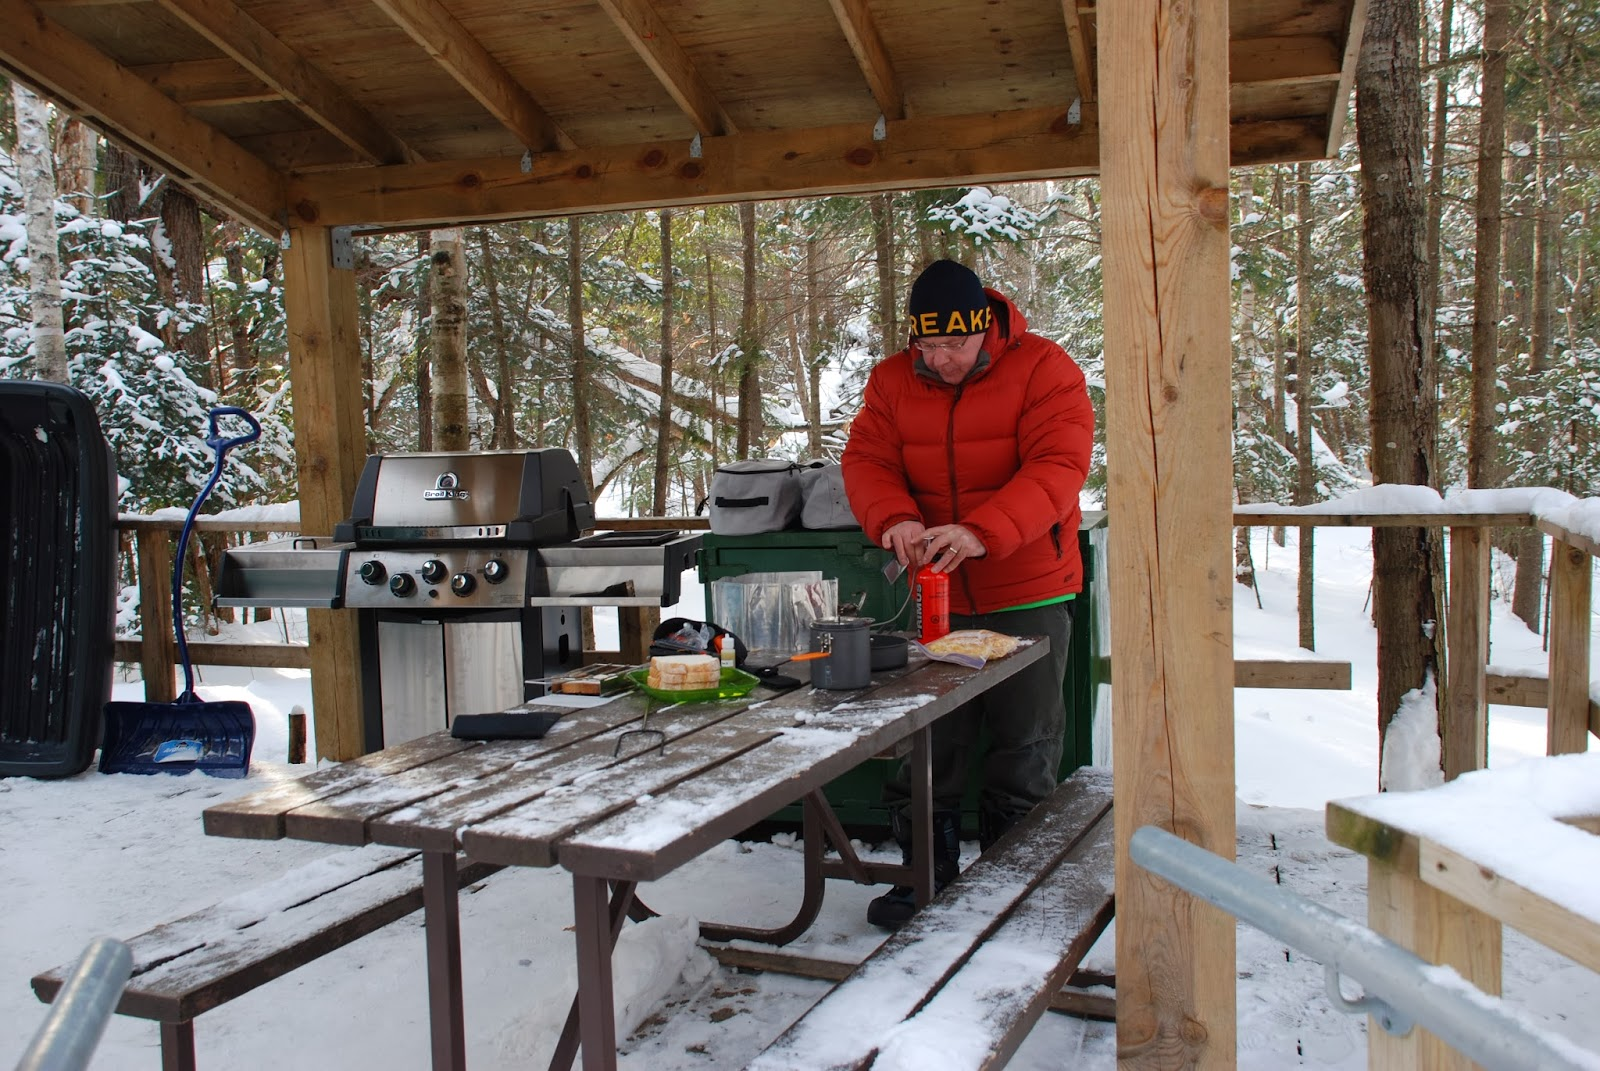 cooking outside during winter at a yurt